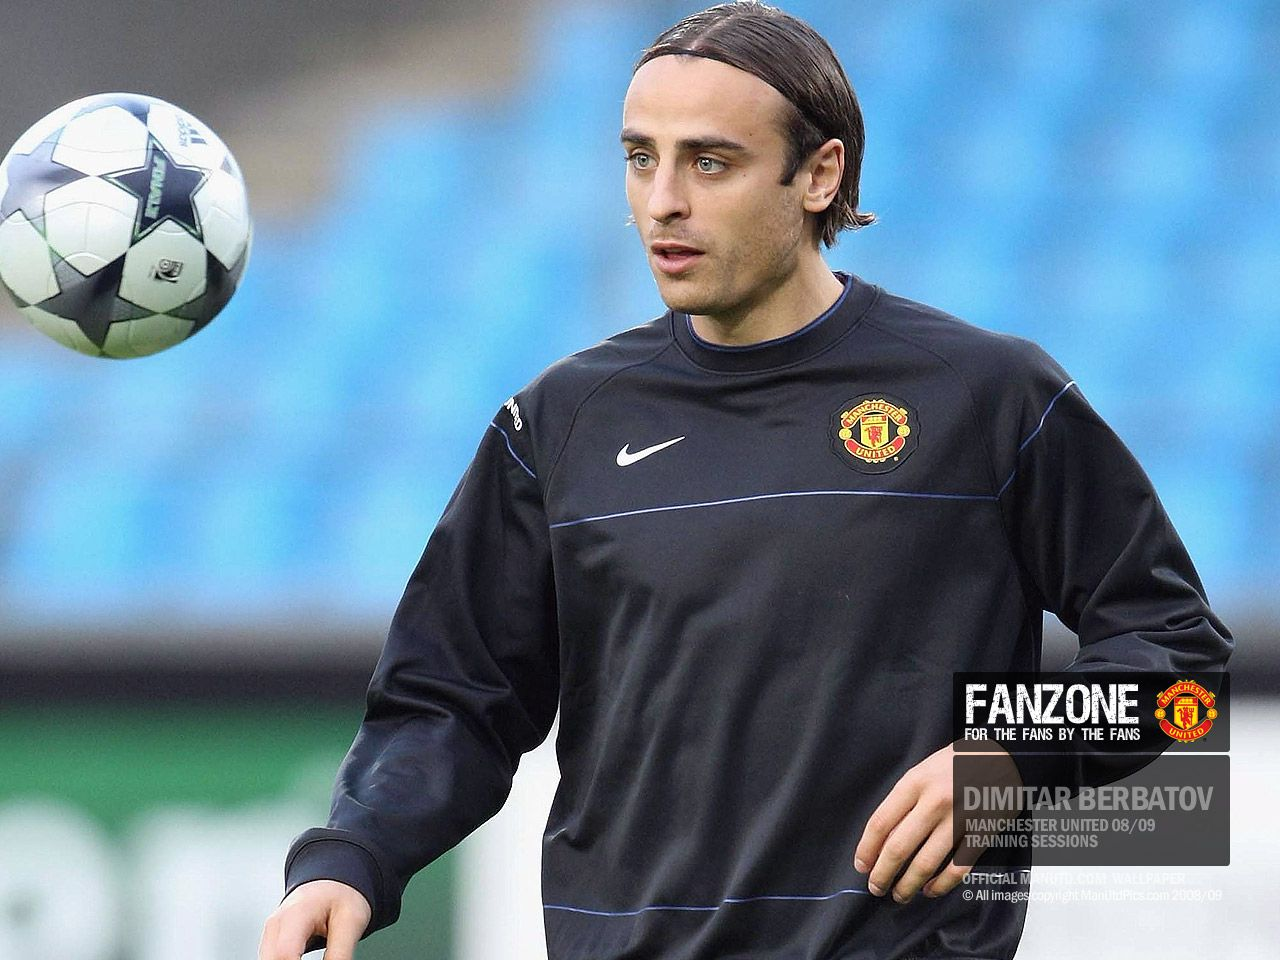 dimitar_berbatov_wallpaper_56